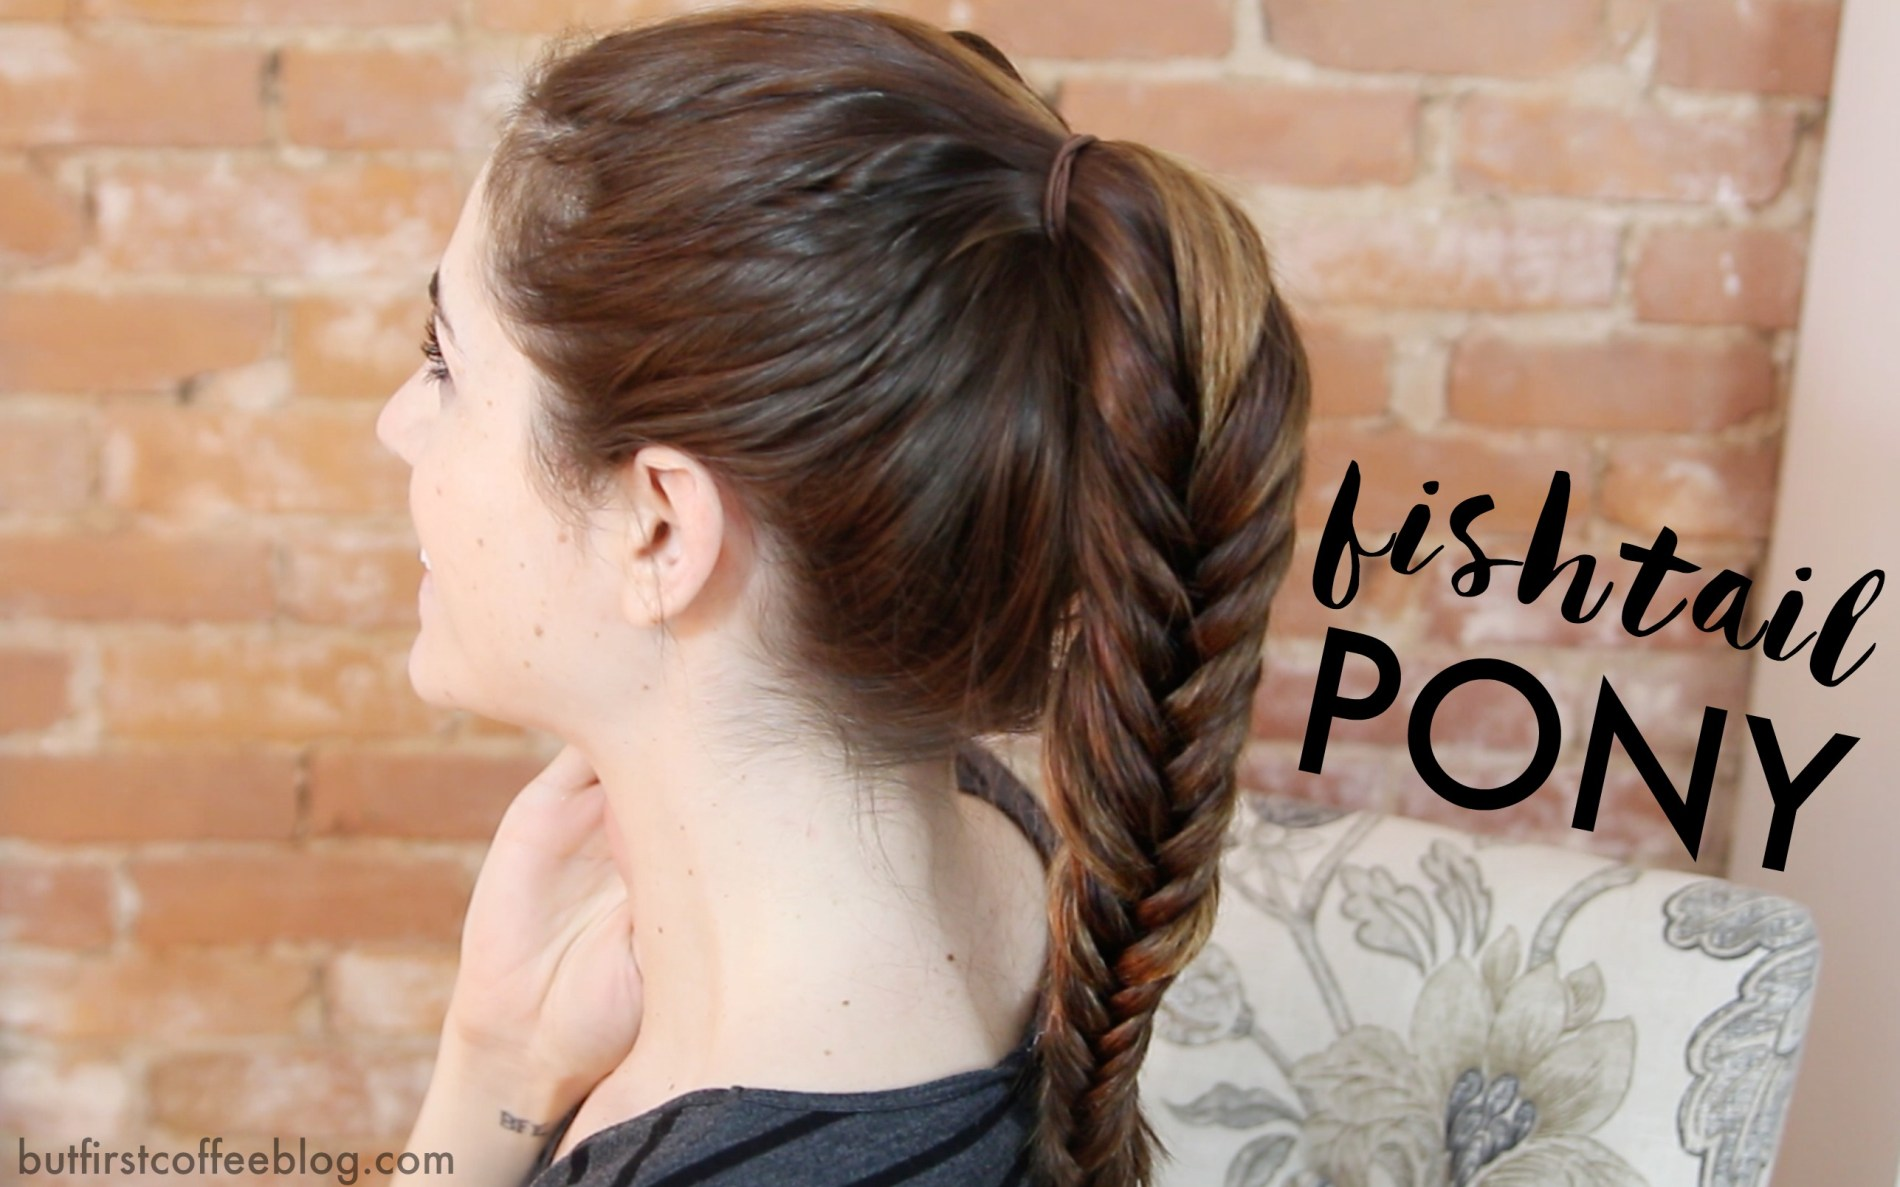 Different Ponytail Ideas - fishtail Ponytail